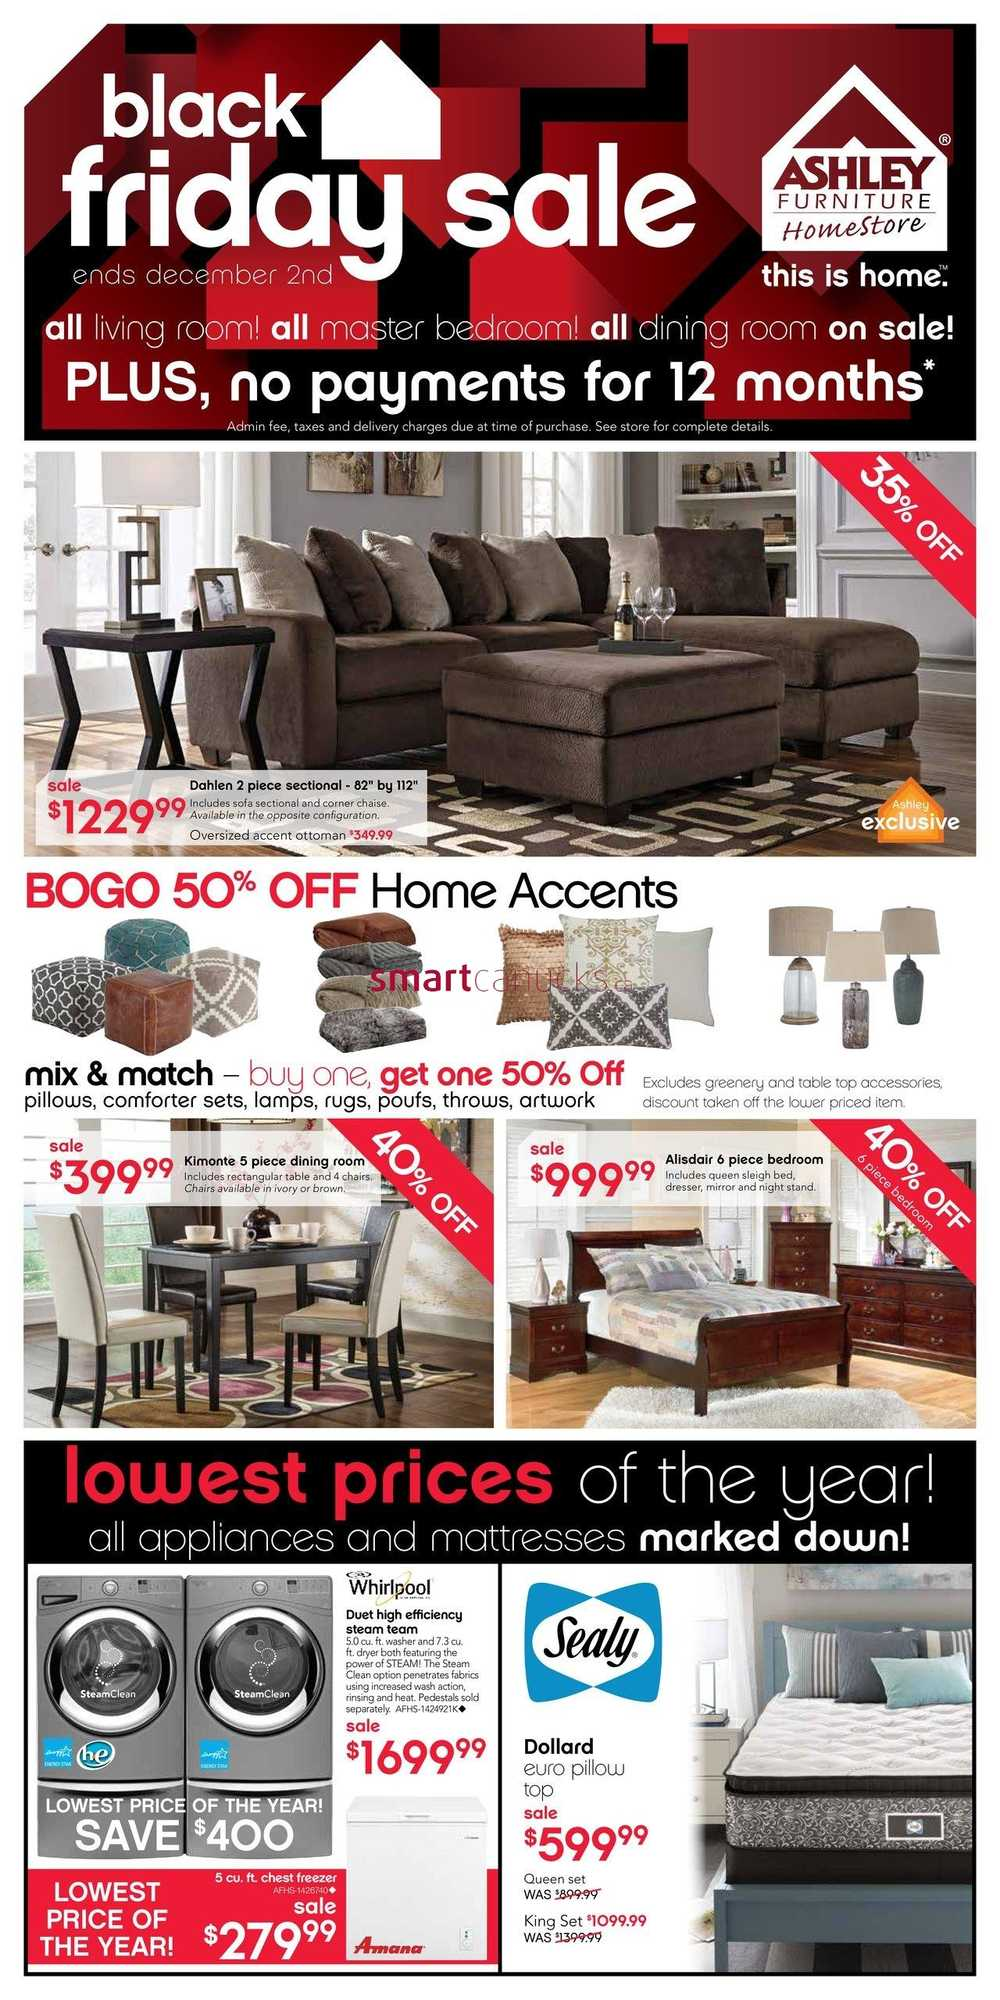 Ashley Furniture Home Store West Black Friday Flyer November 26 To December 2